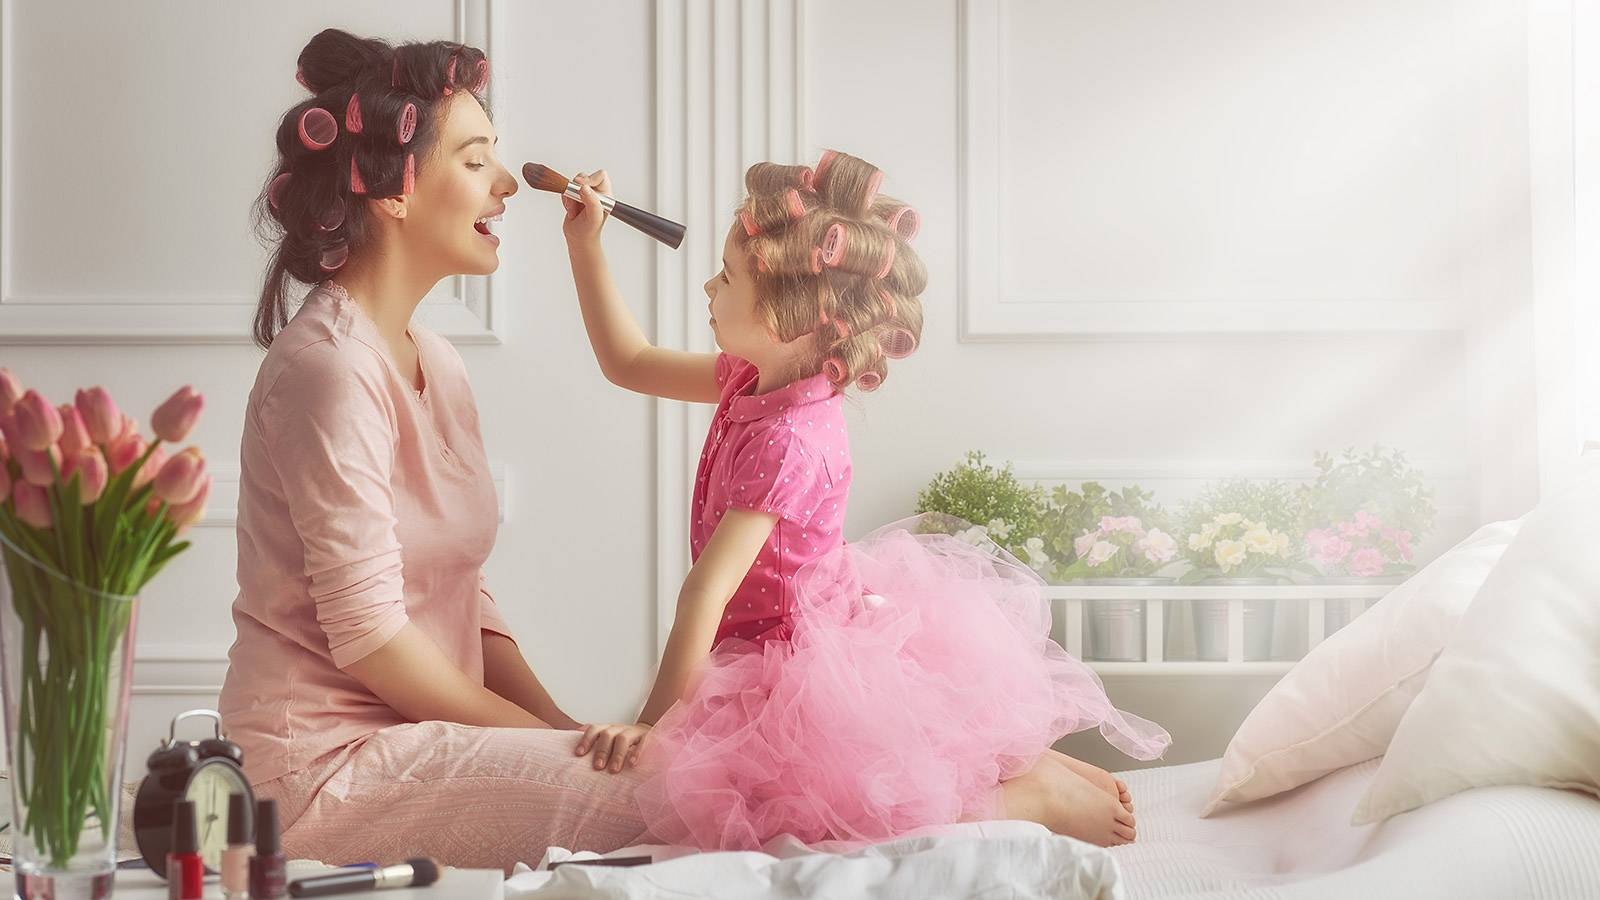 Parents-8-secrets-of-mums-who-always-seem-to-have-it-together-2